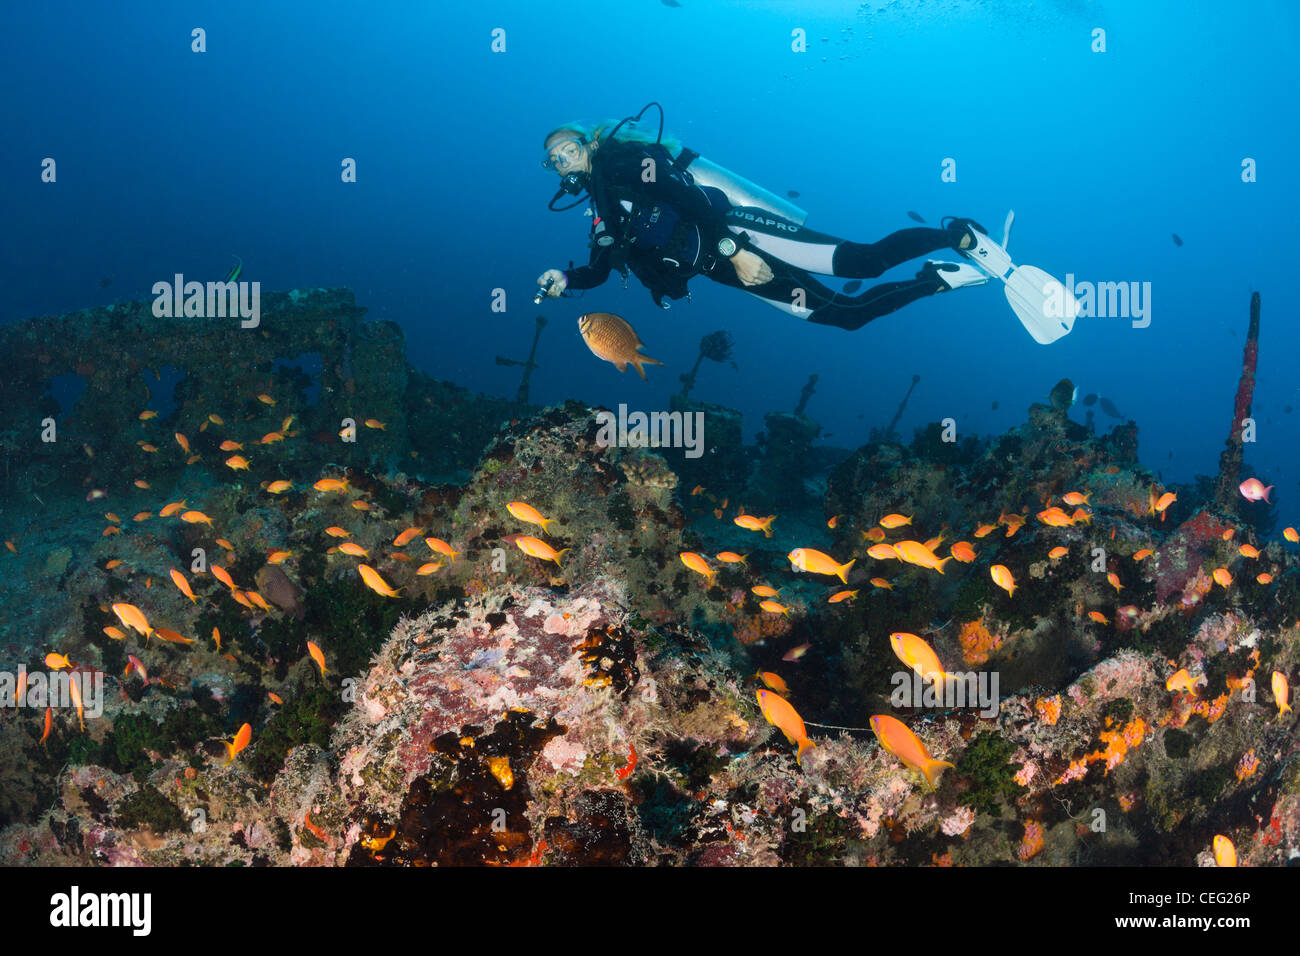 Scuba Diver at Stern of Maldive Victory Wreck, North Male Atoll, Indian Ocean, Maldives - Stock Image